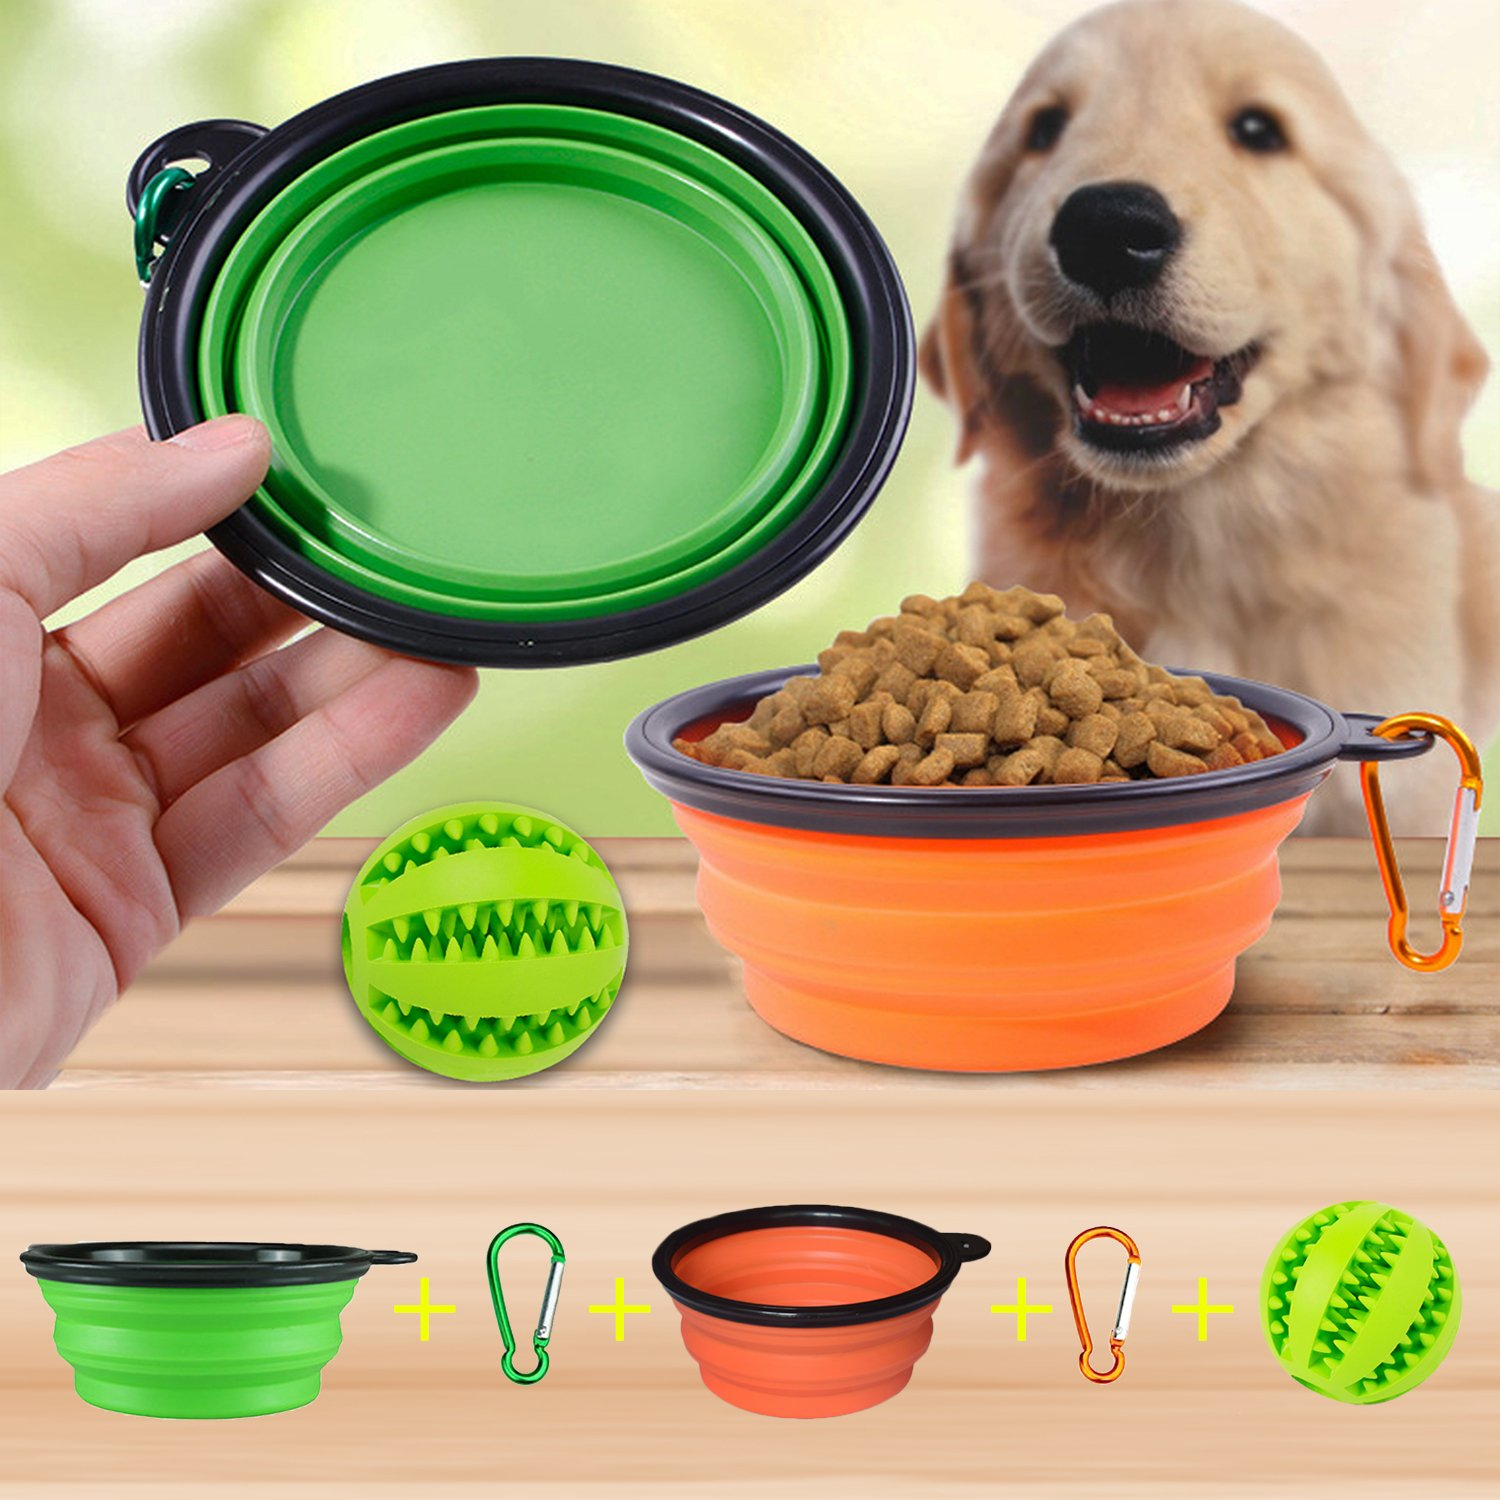 orange & Green 2 sets Collapsible Dog Bowls with IQ Training Toy Ball, Neodot Pet Food Water Feeding CollapsibleTravel Bowls with Non-Toxic Soft Rubber Silicone Toy Ball for Dogs Teeth Cleaning Chewing